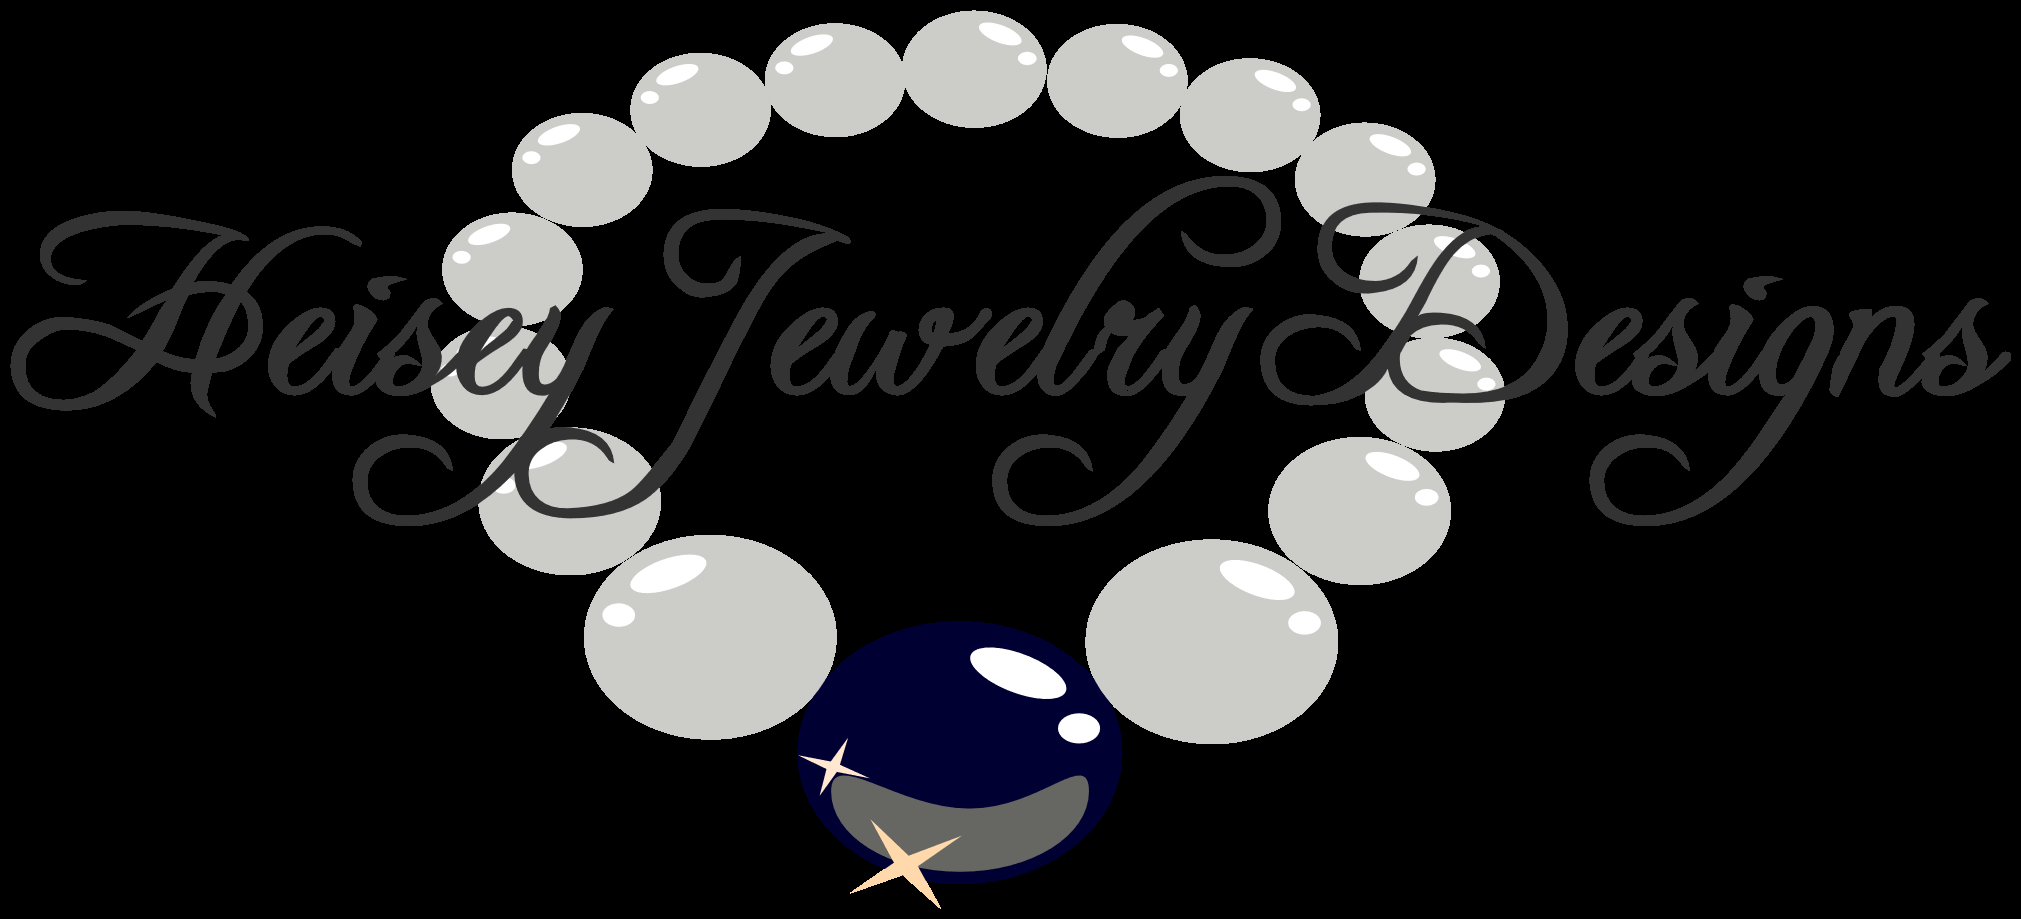 Heisey Jewelry Designs